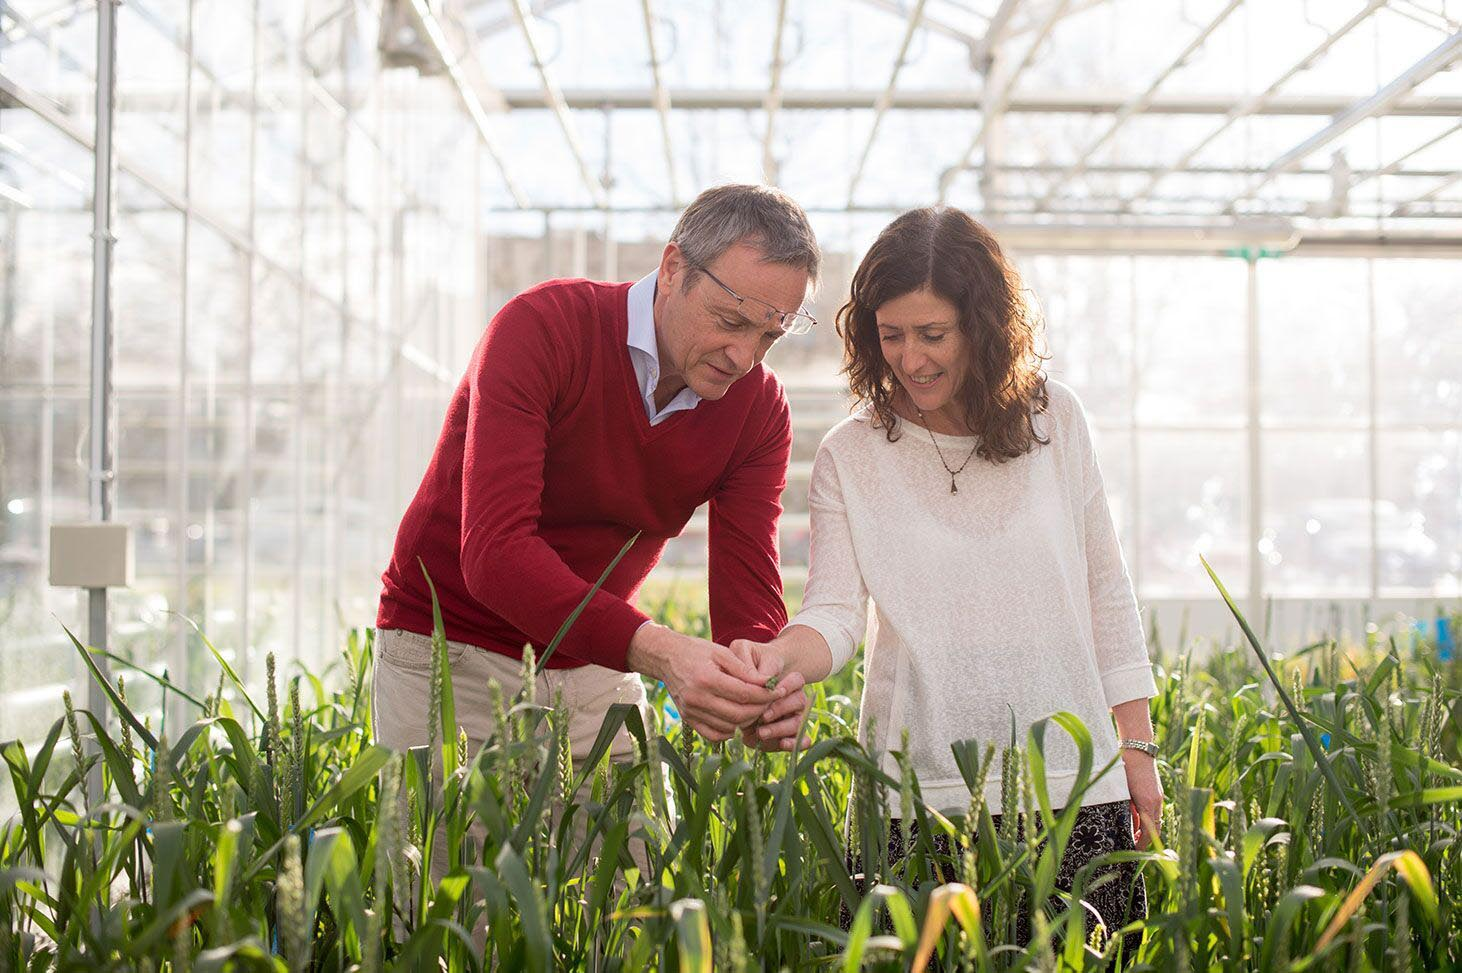 'Industrial scale' plant breeding to develop sustainable wheat varieties